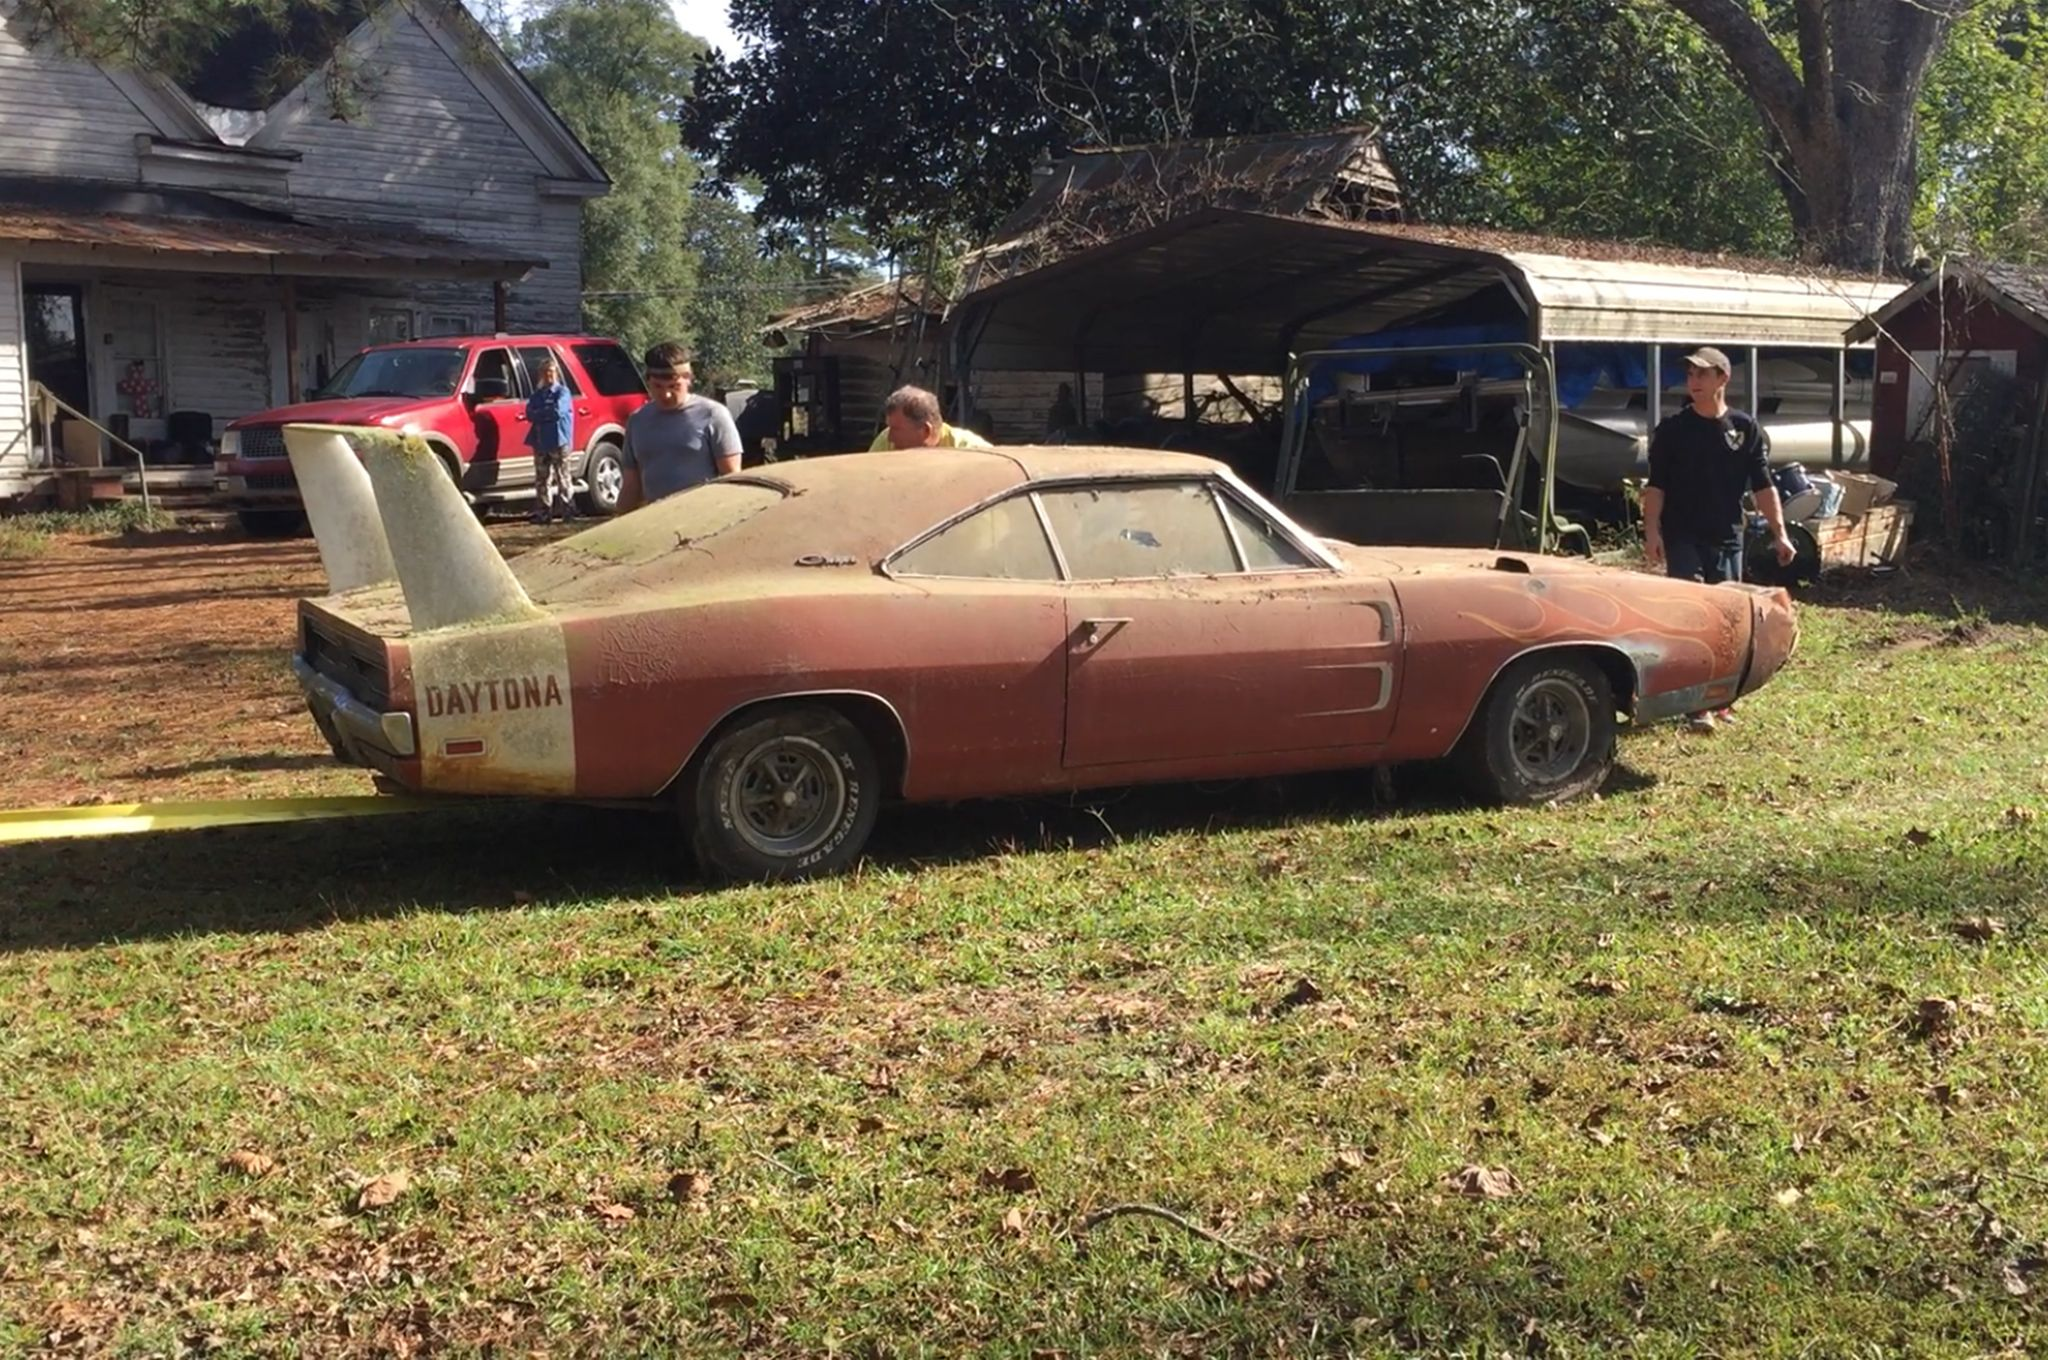 Decrepit Barn Find 1969 Dodge Charger Daytona to Be Auctioned to